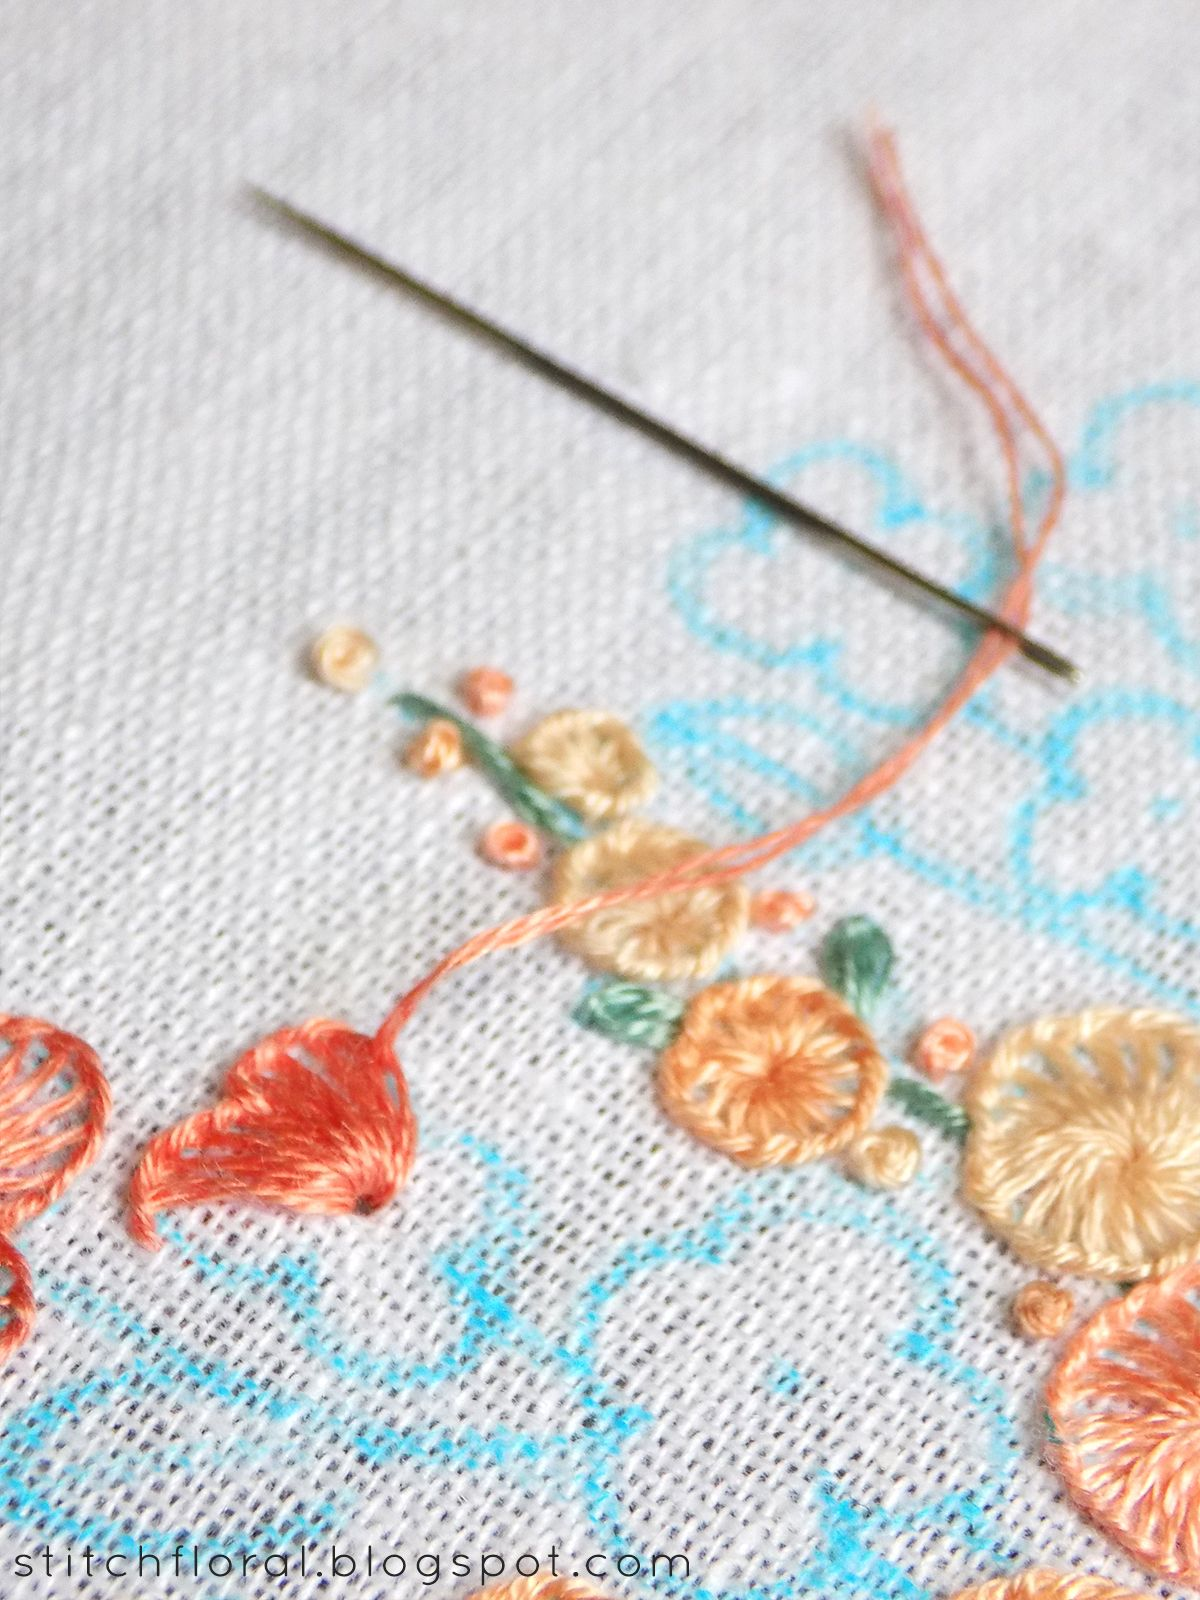 images Buttonhole Stitch Tutorial - Photos and Instructions